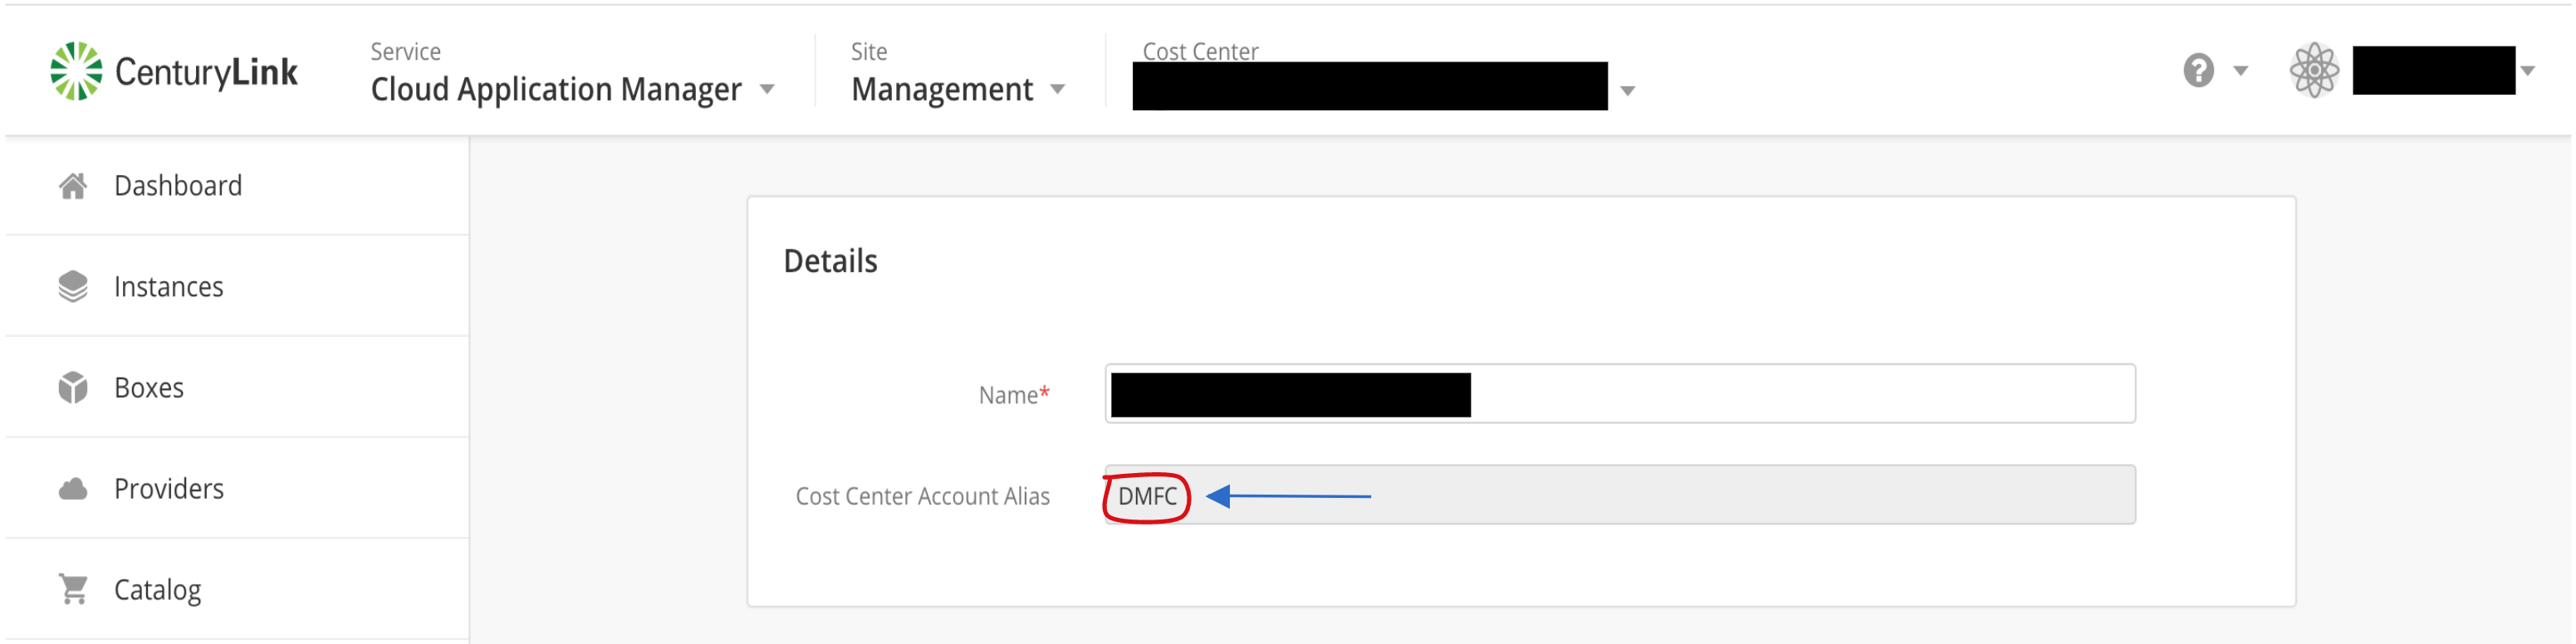 Cost Center Account Alias